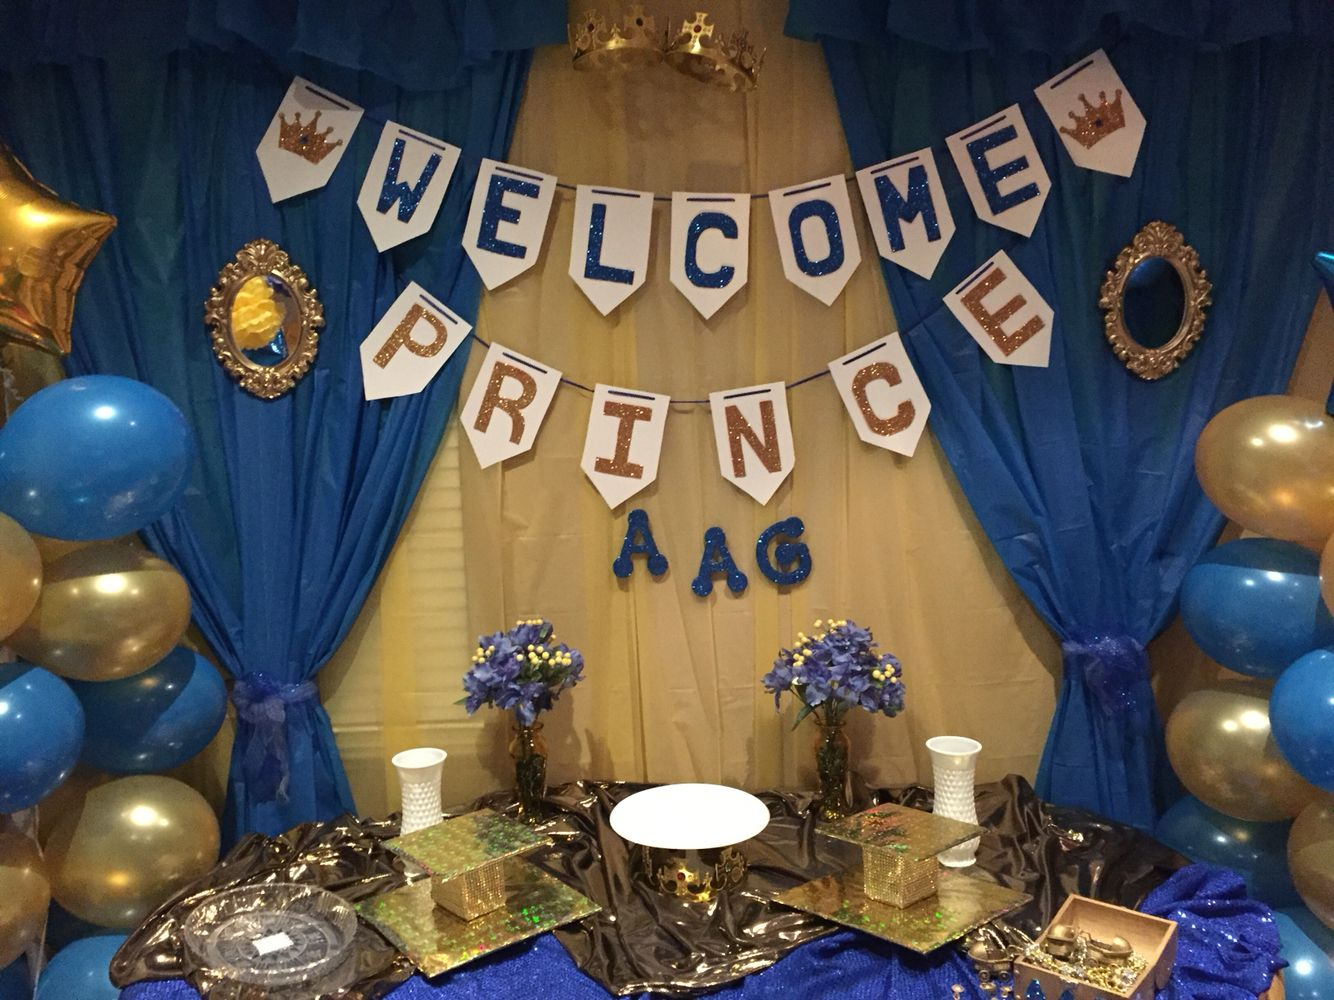 Royal Blue And Gold Baby Shower Cake Table Decorations Baby Shower Cake Table Gold Baby Shower Cake Cake Table Decorations Baby Shower